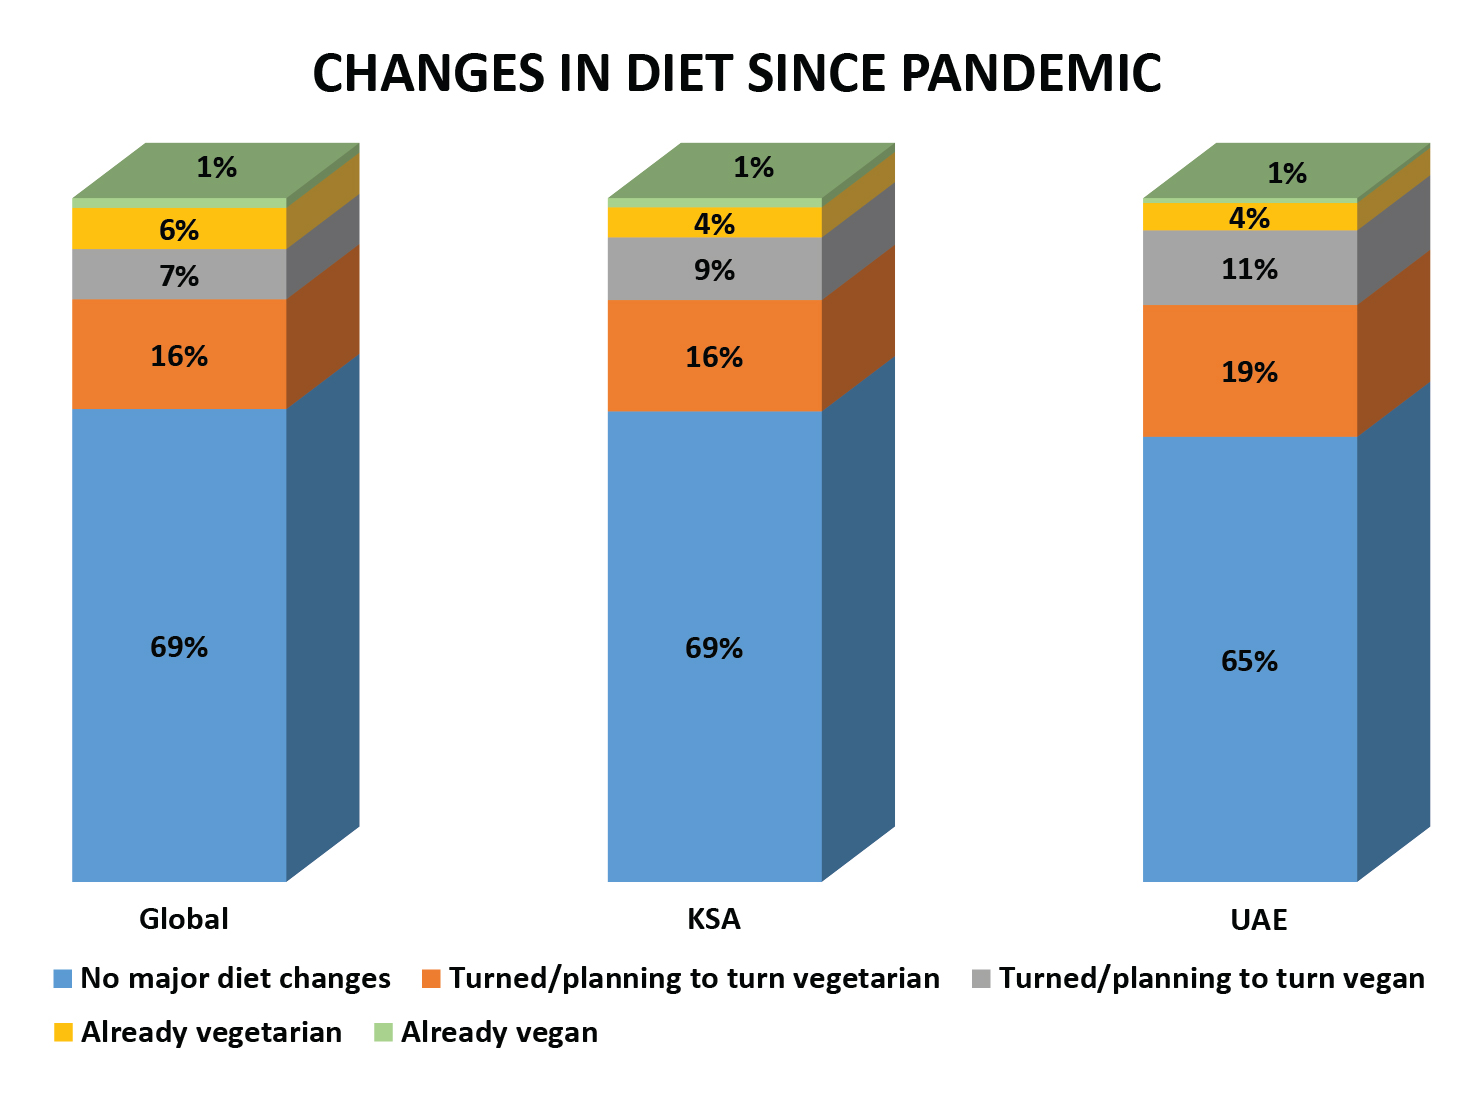 Healthy lifestyles embraced as a result of the pandemic-02